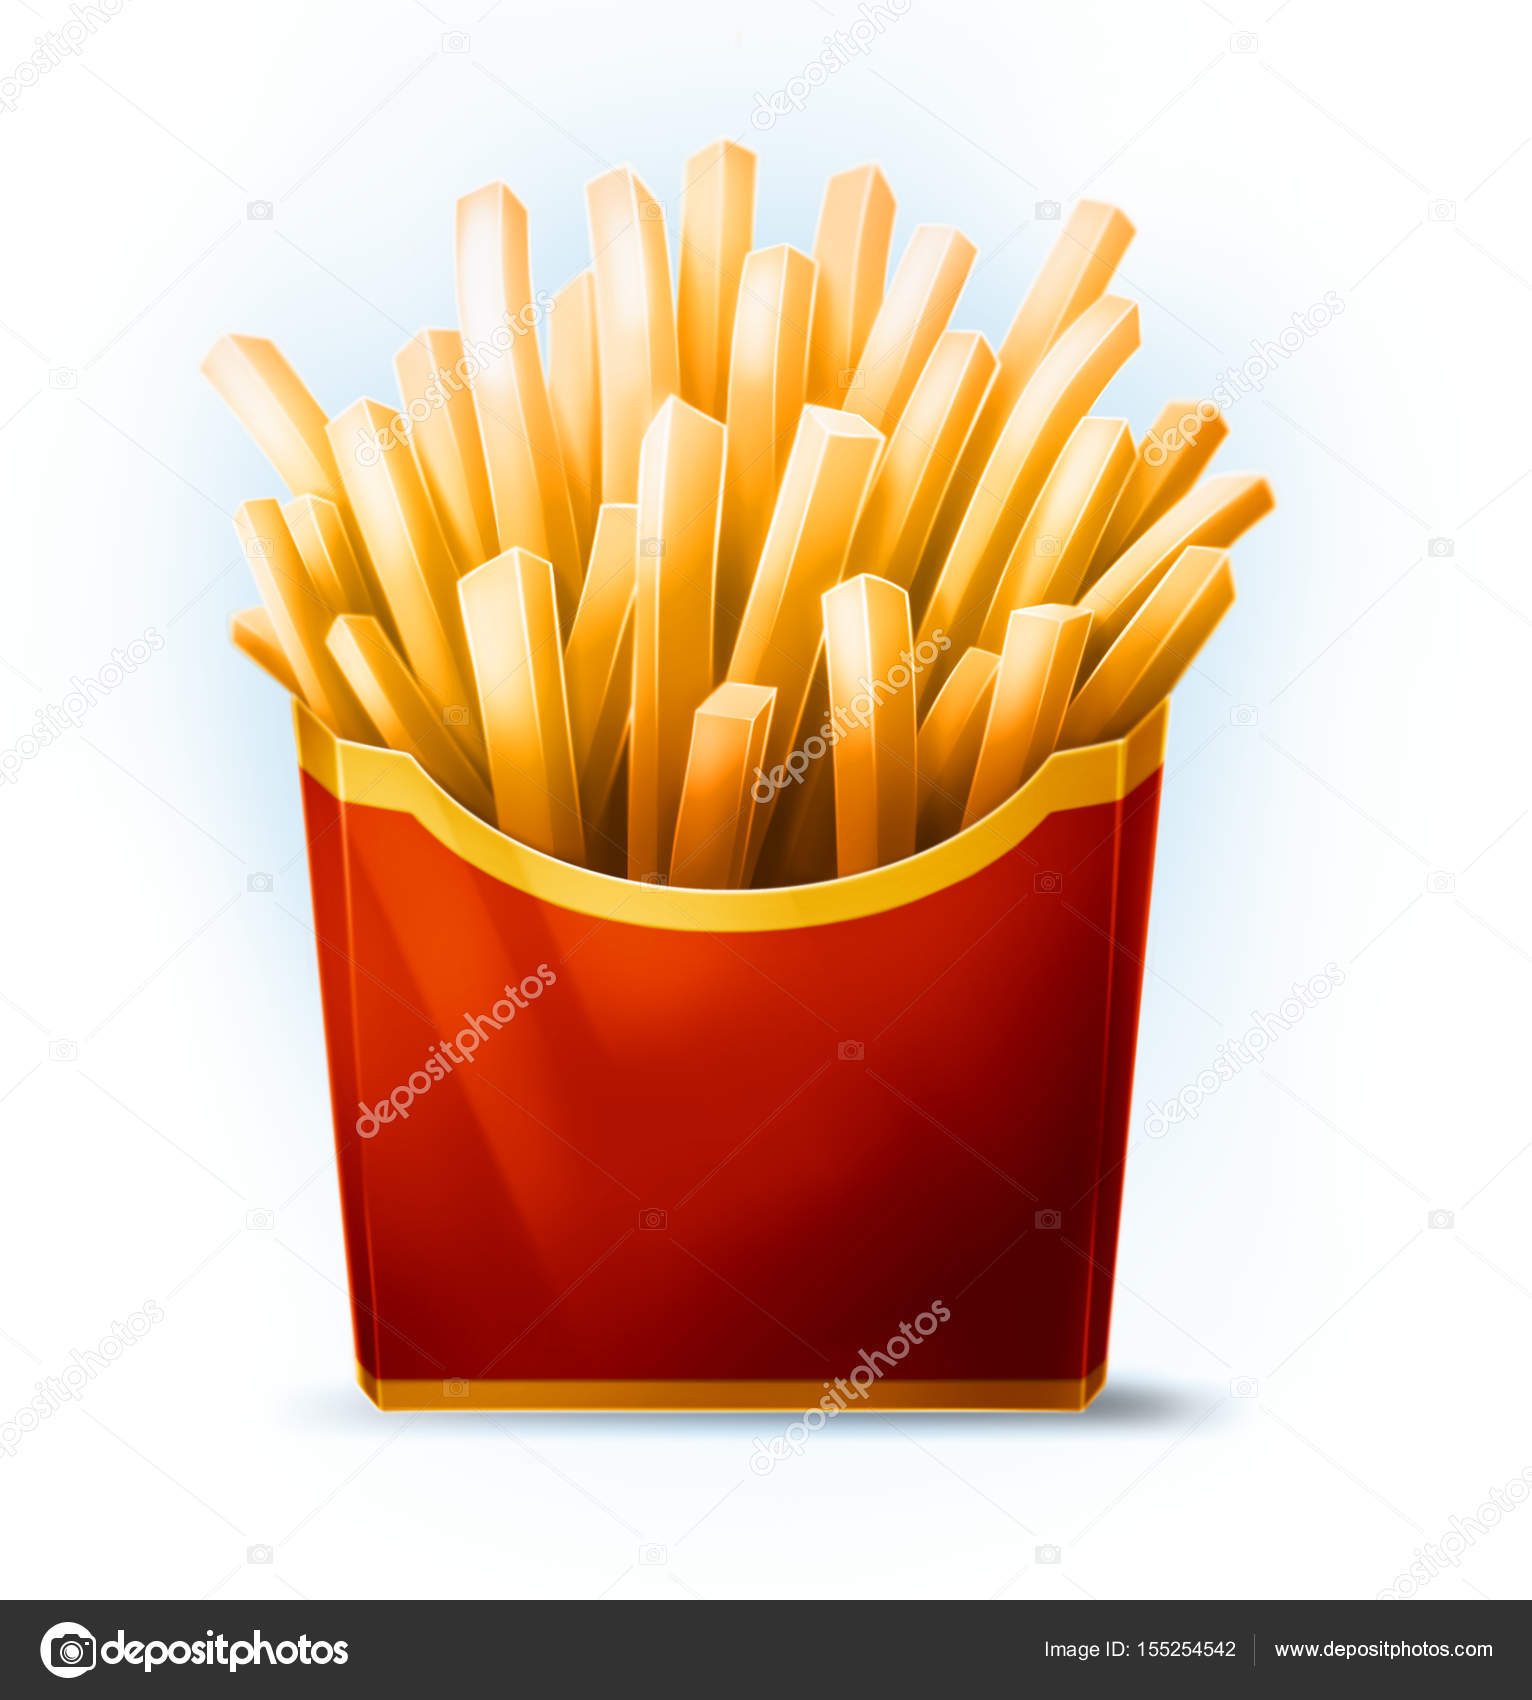 Tasty Cartoon French Fries In Red Box With Yellow Stripe Stock